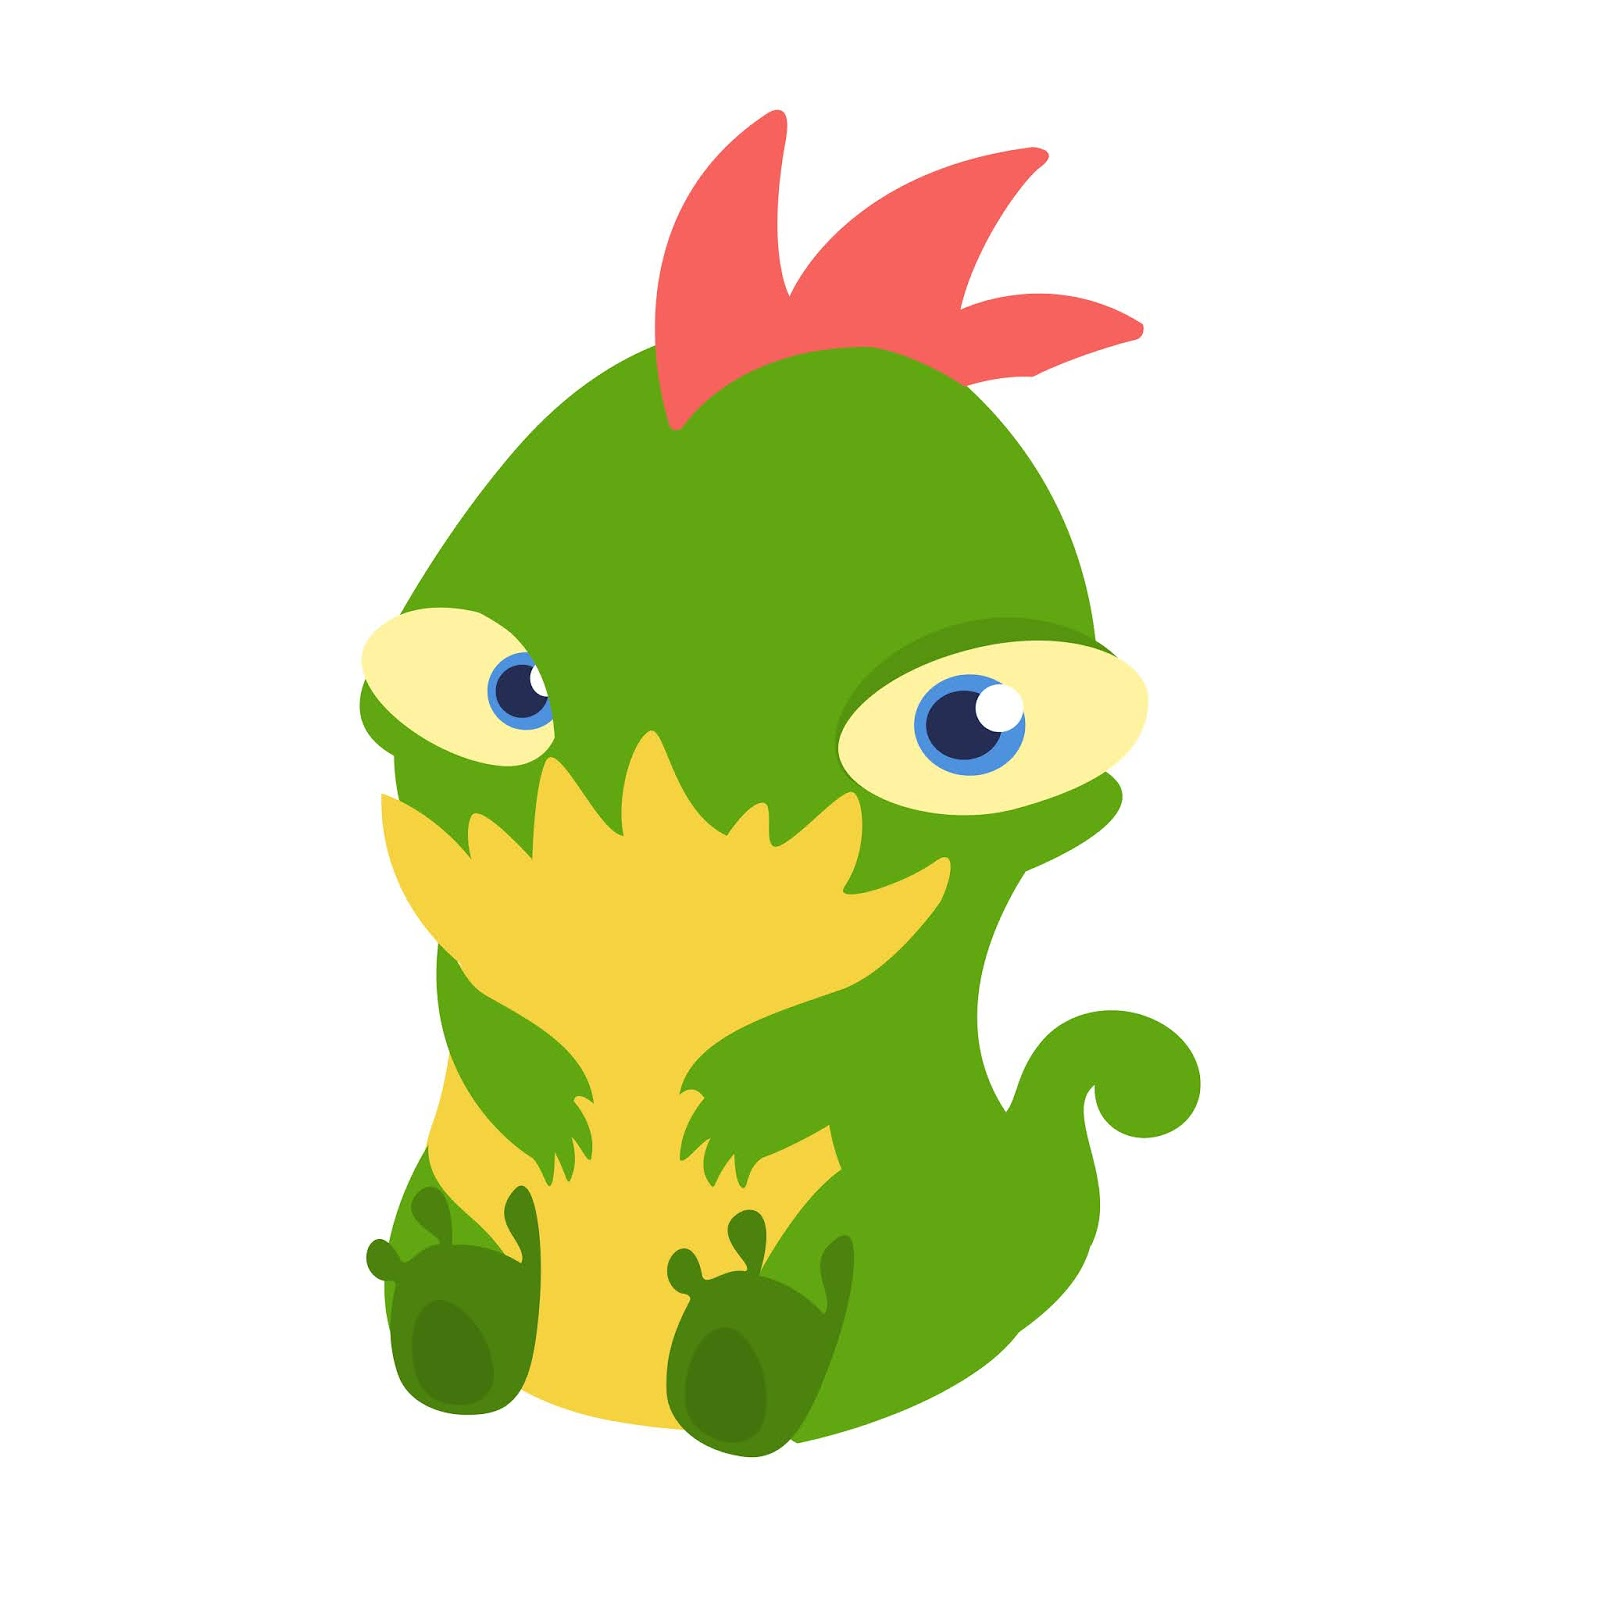 Cute Cartoon Tiny Monster Illustration Free Download Vector CDR, AI, EPS and PNG Formats